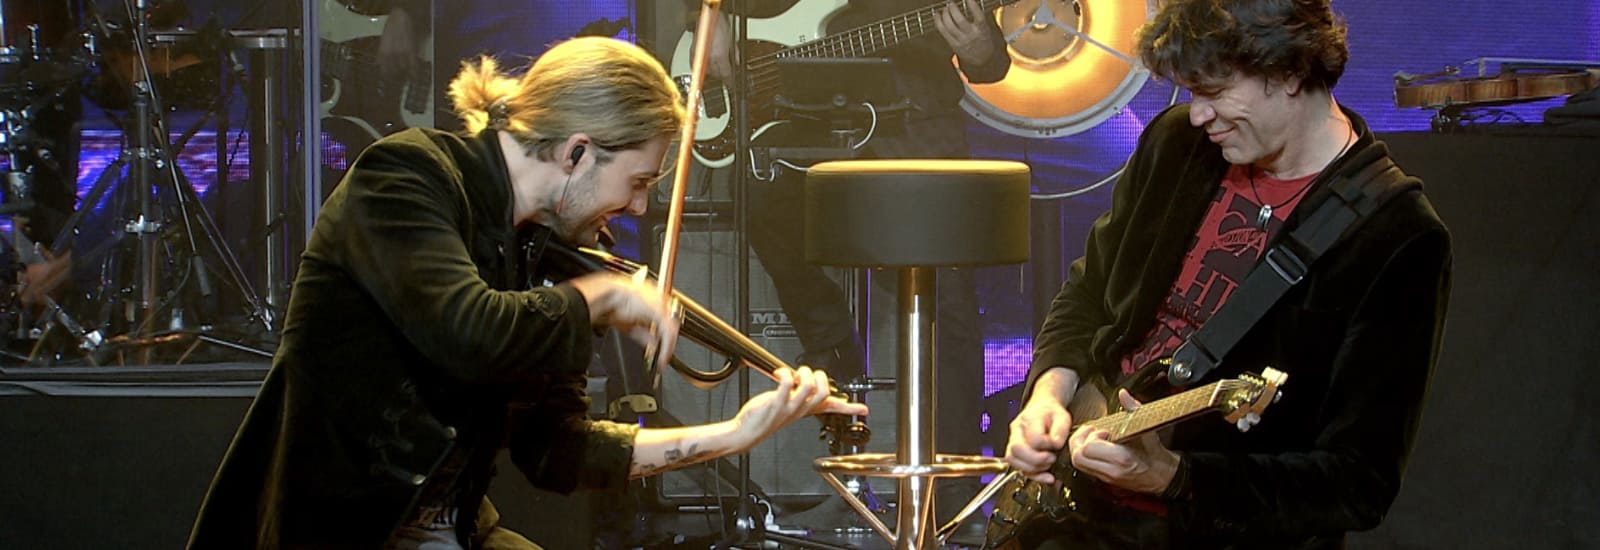 Stars at Sea - David Garrett und Band